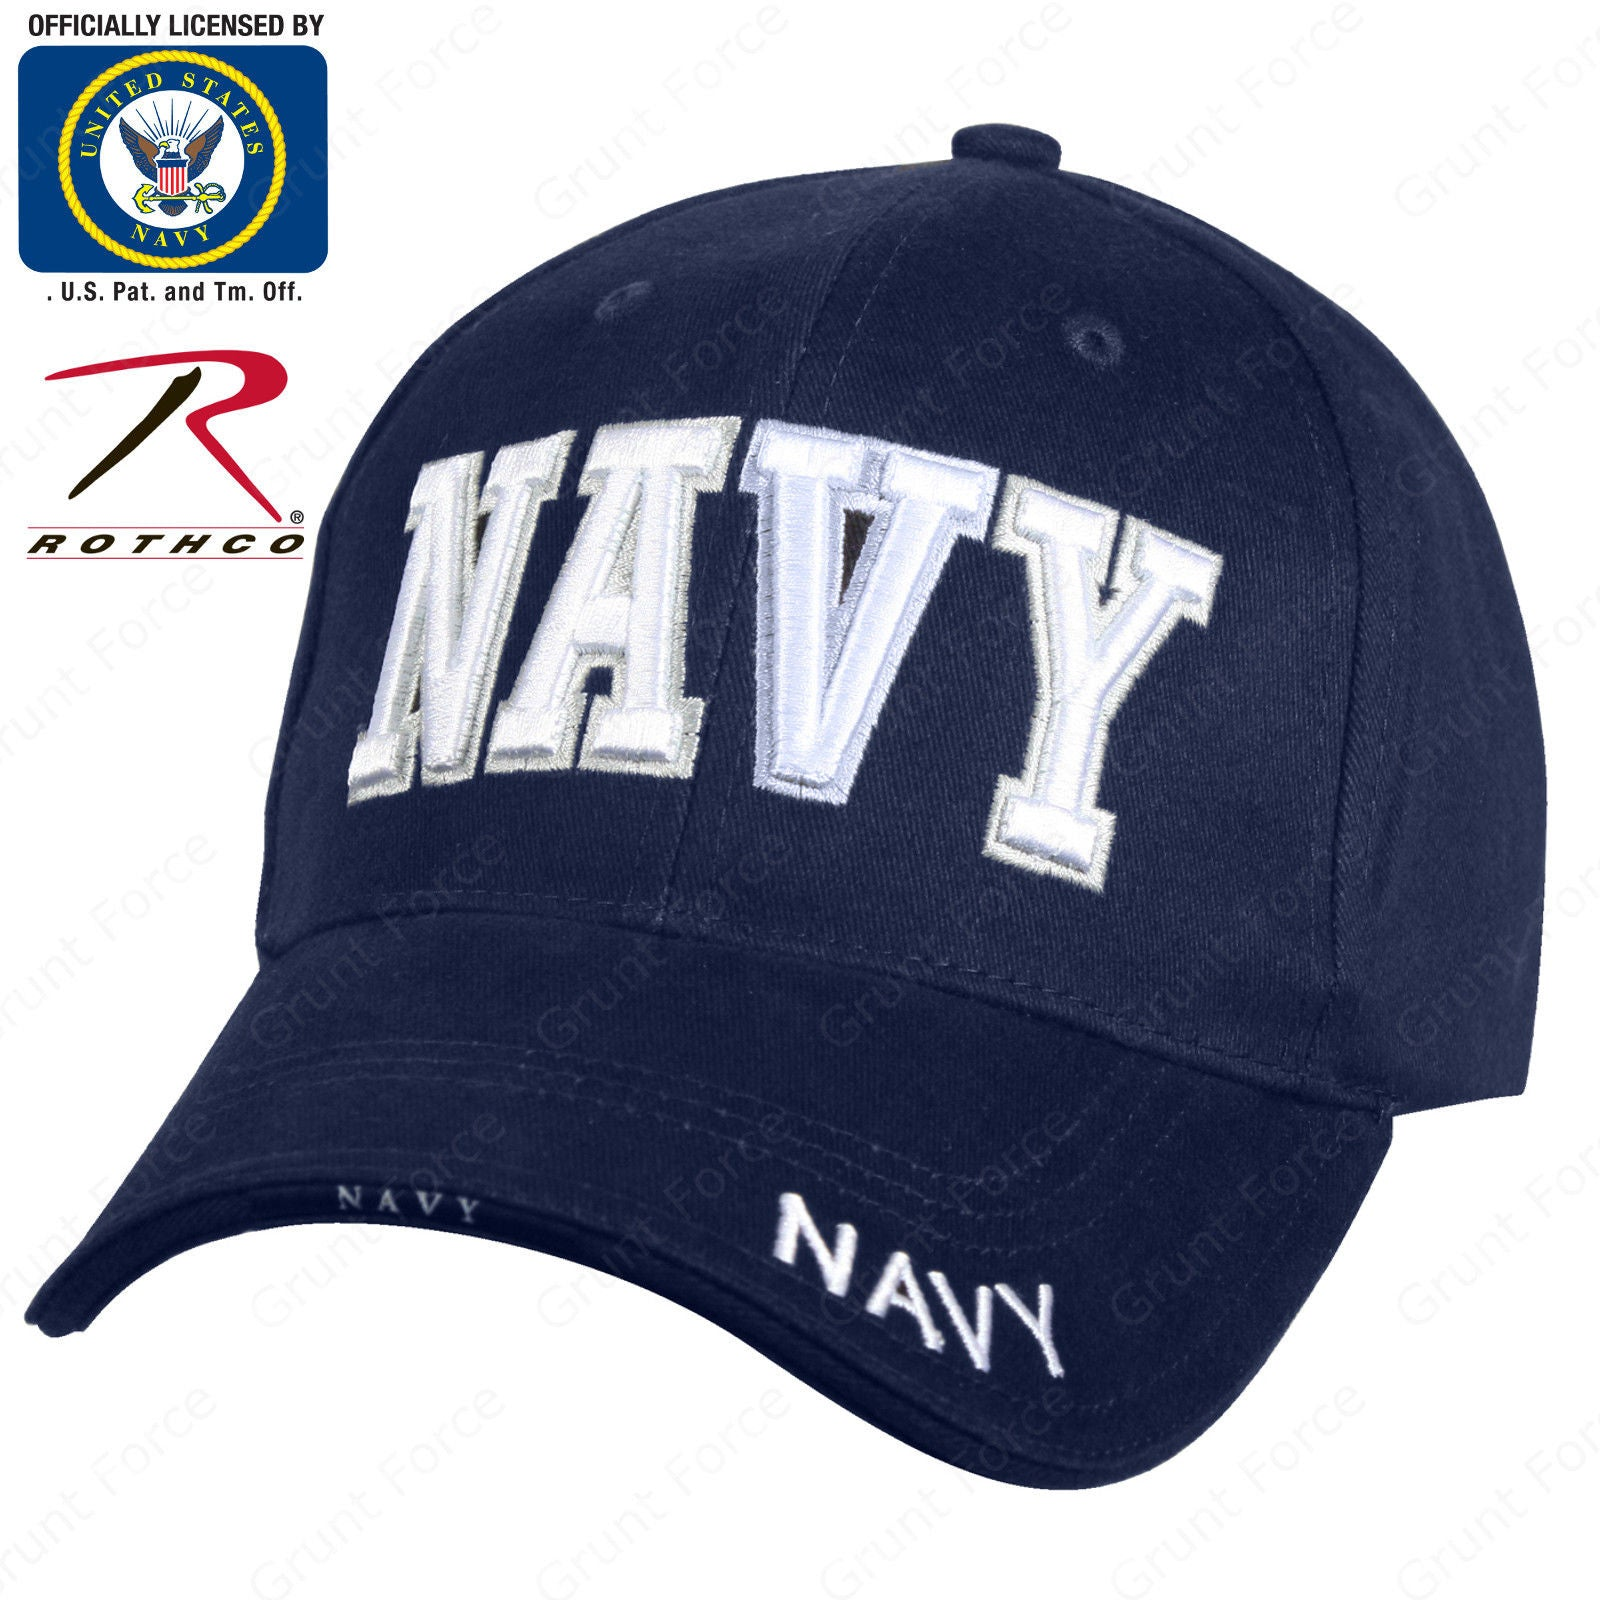 82a3c83df9fc7 ... Navy Blue Mid-Low Profile Baseball Cap. Zoom. Move your mouse over  image or click to enlarge